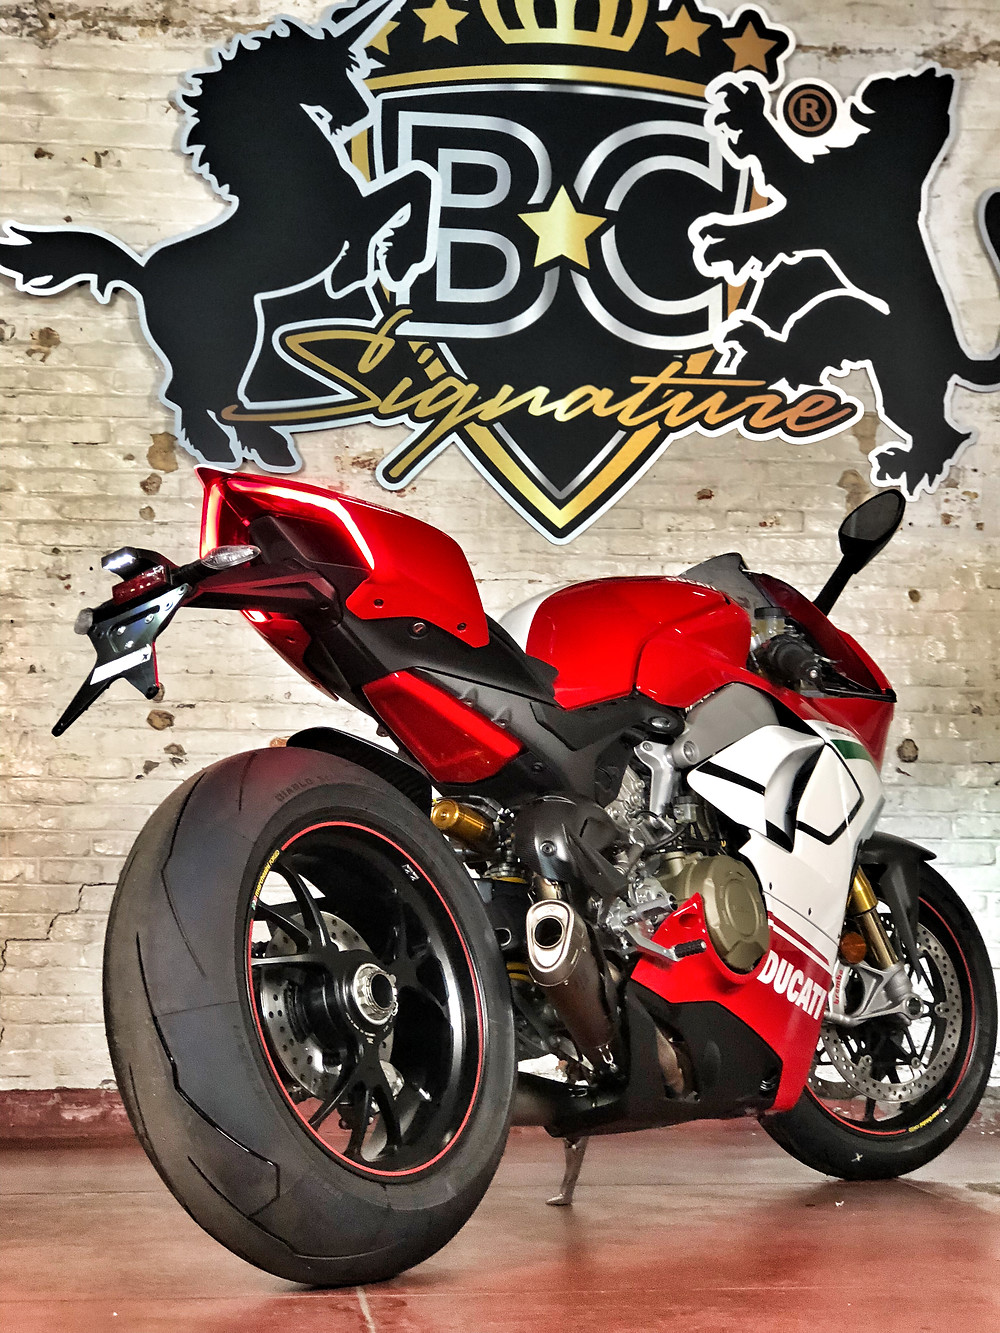 Ducati Panigale V4 Speciale Xpel protection wrap